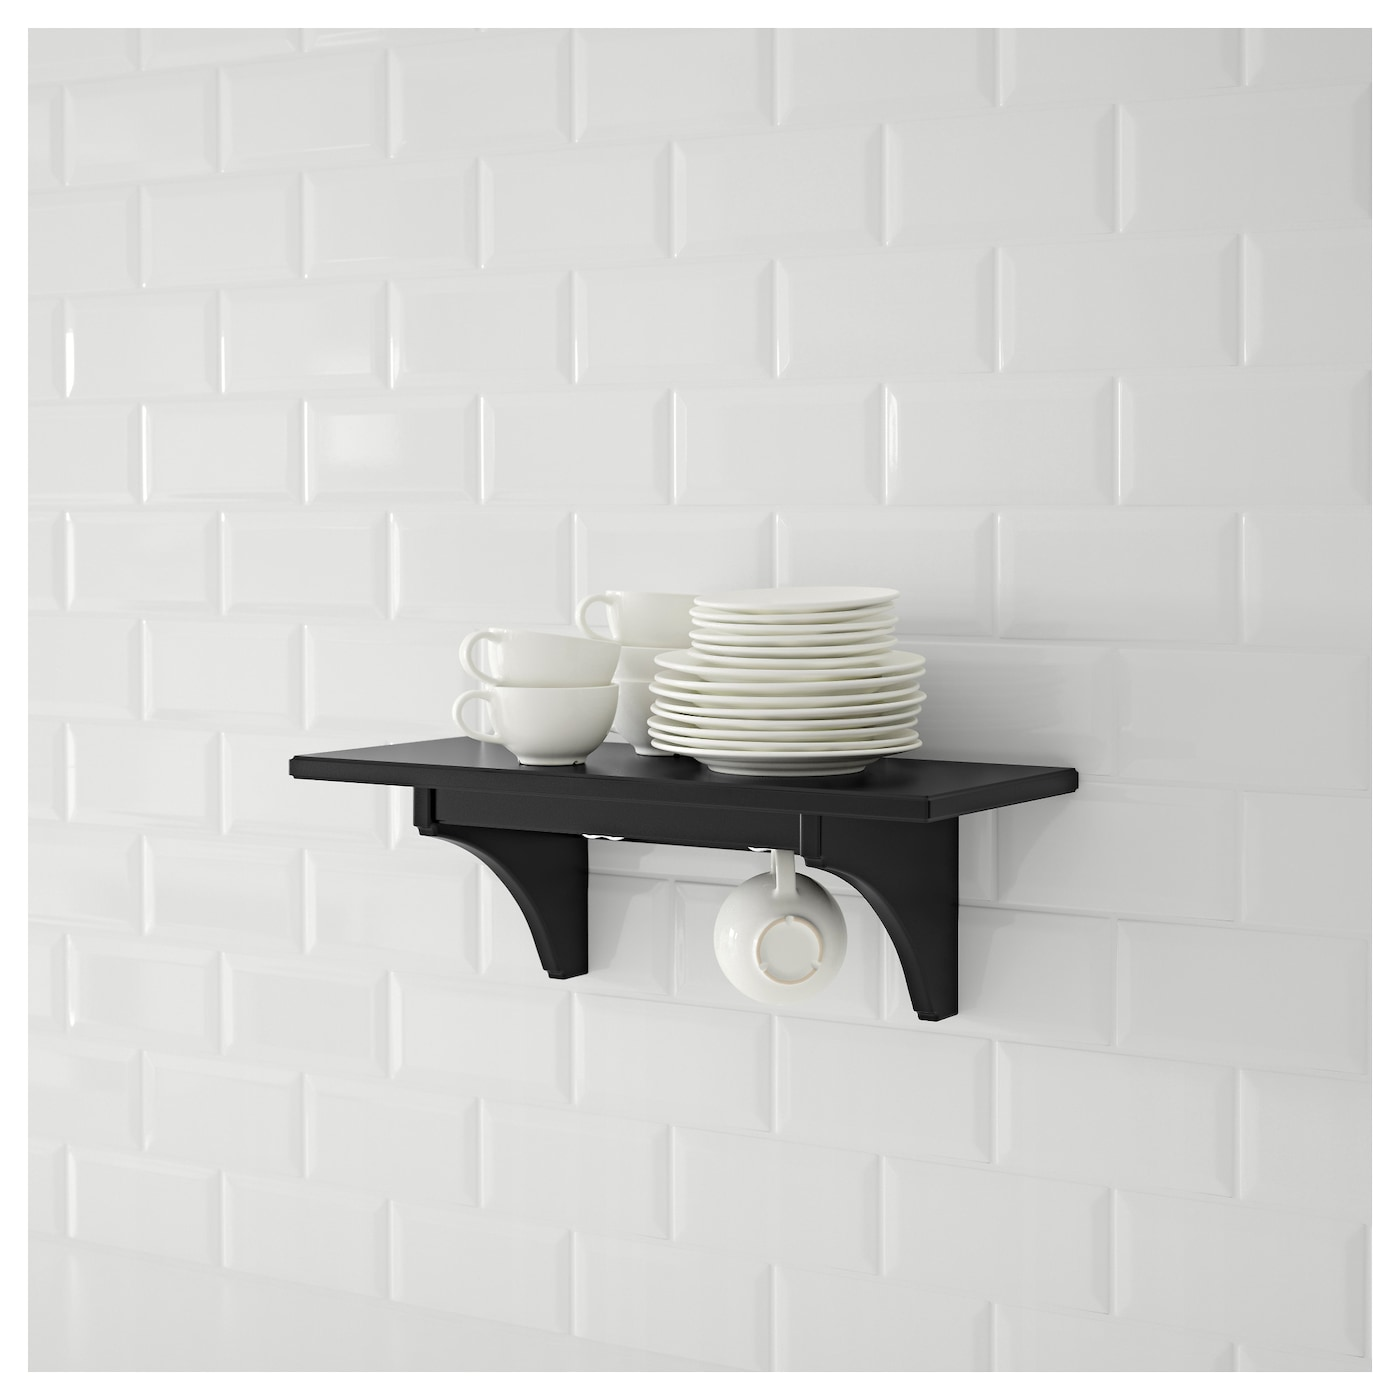 Stenstorp wall shelf black brown 60 cm ikea for Ikea stenstorp ka cheninsel